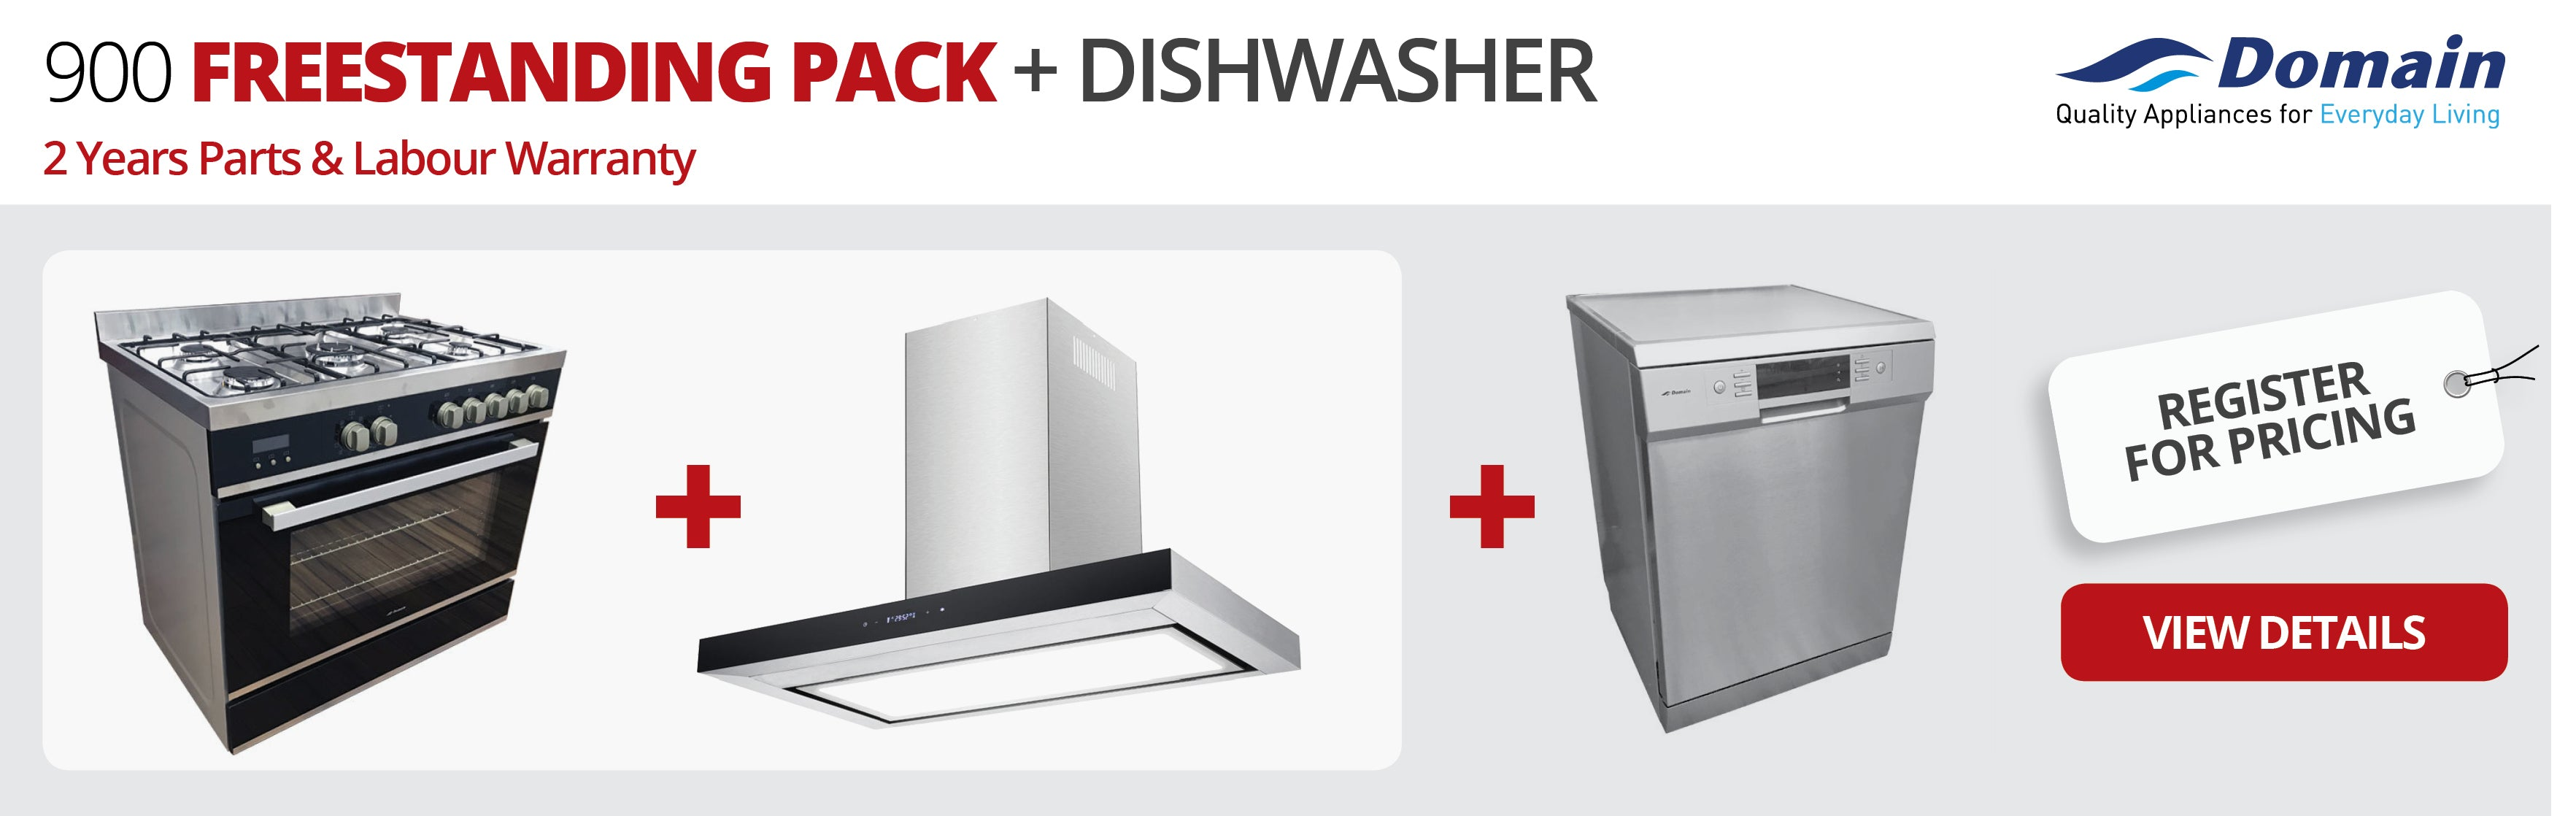 900 Freestanding Pack + Dishwasher